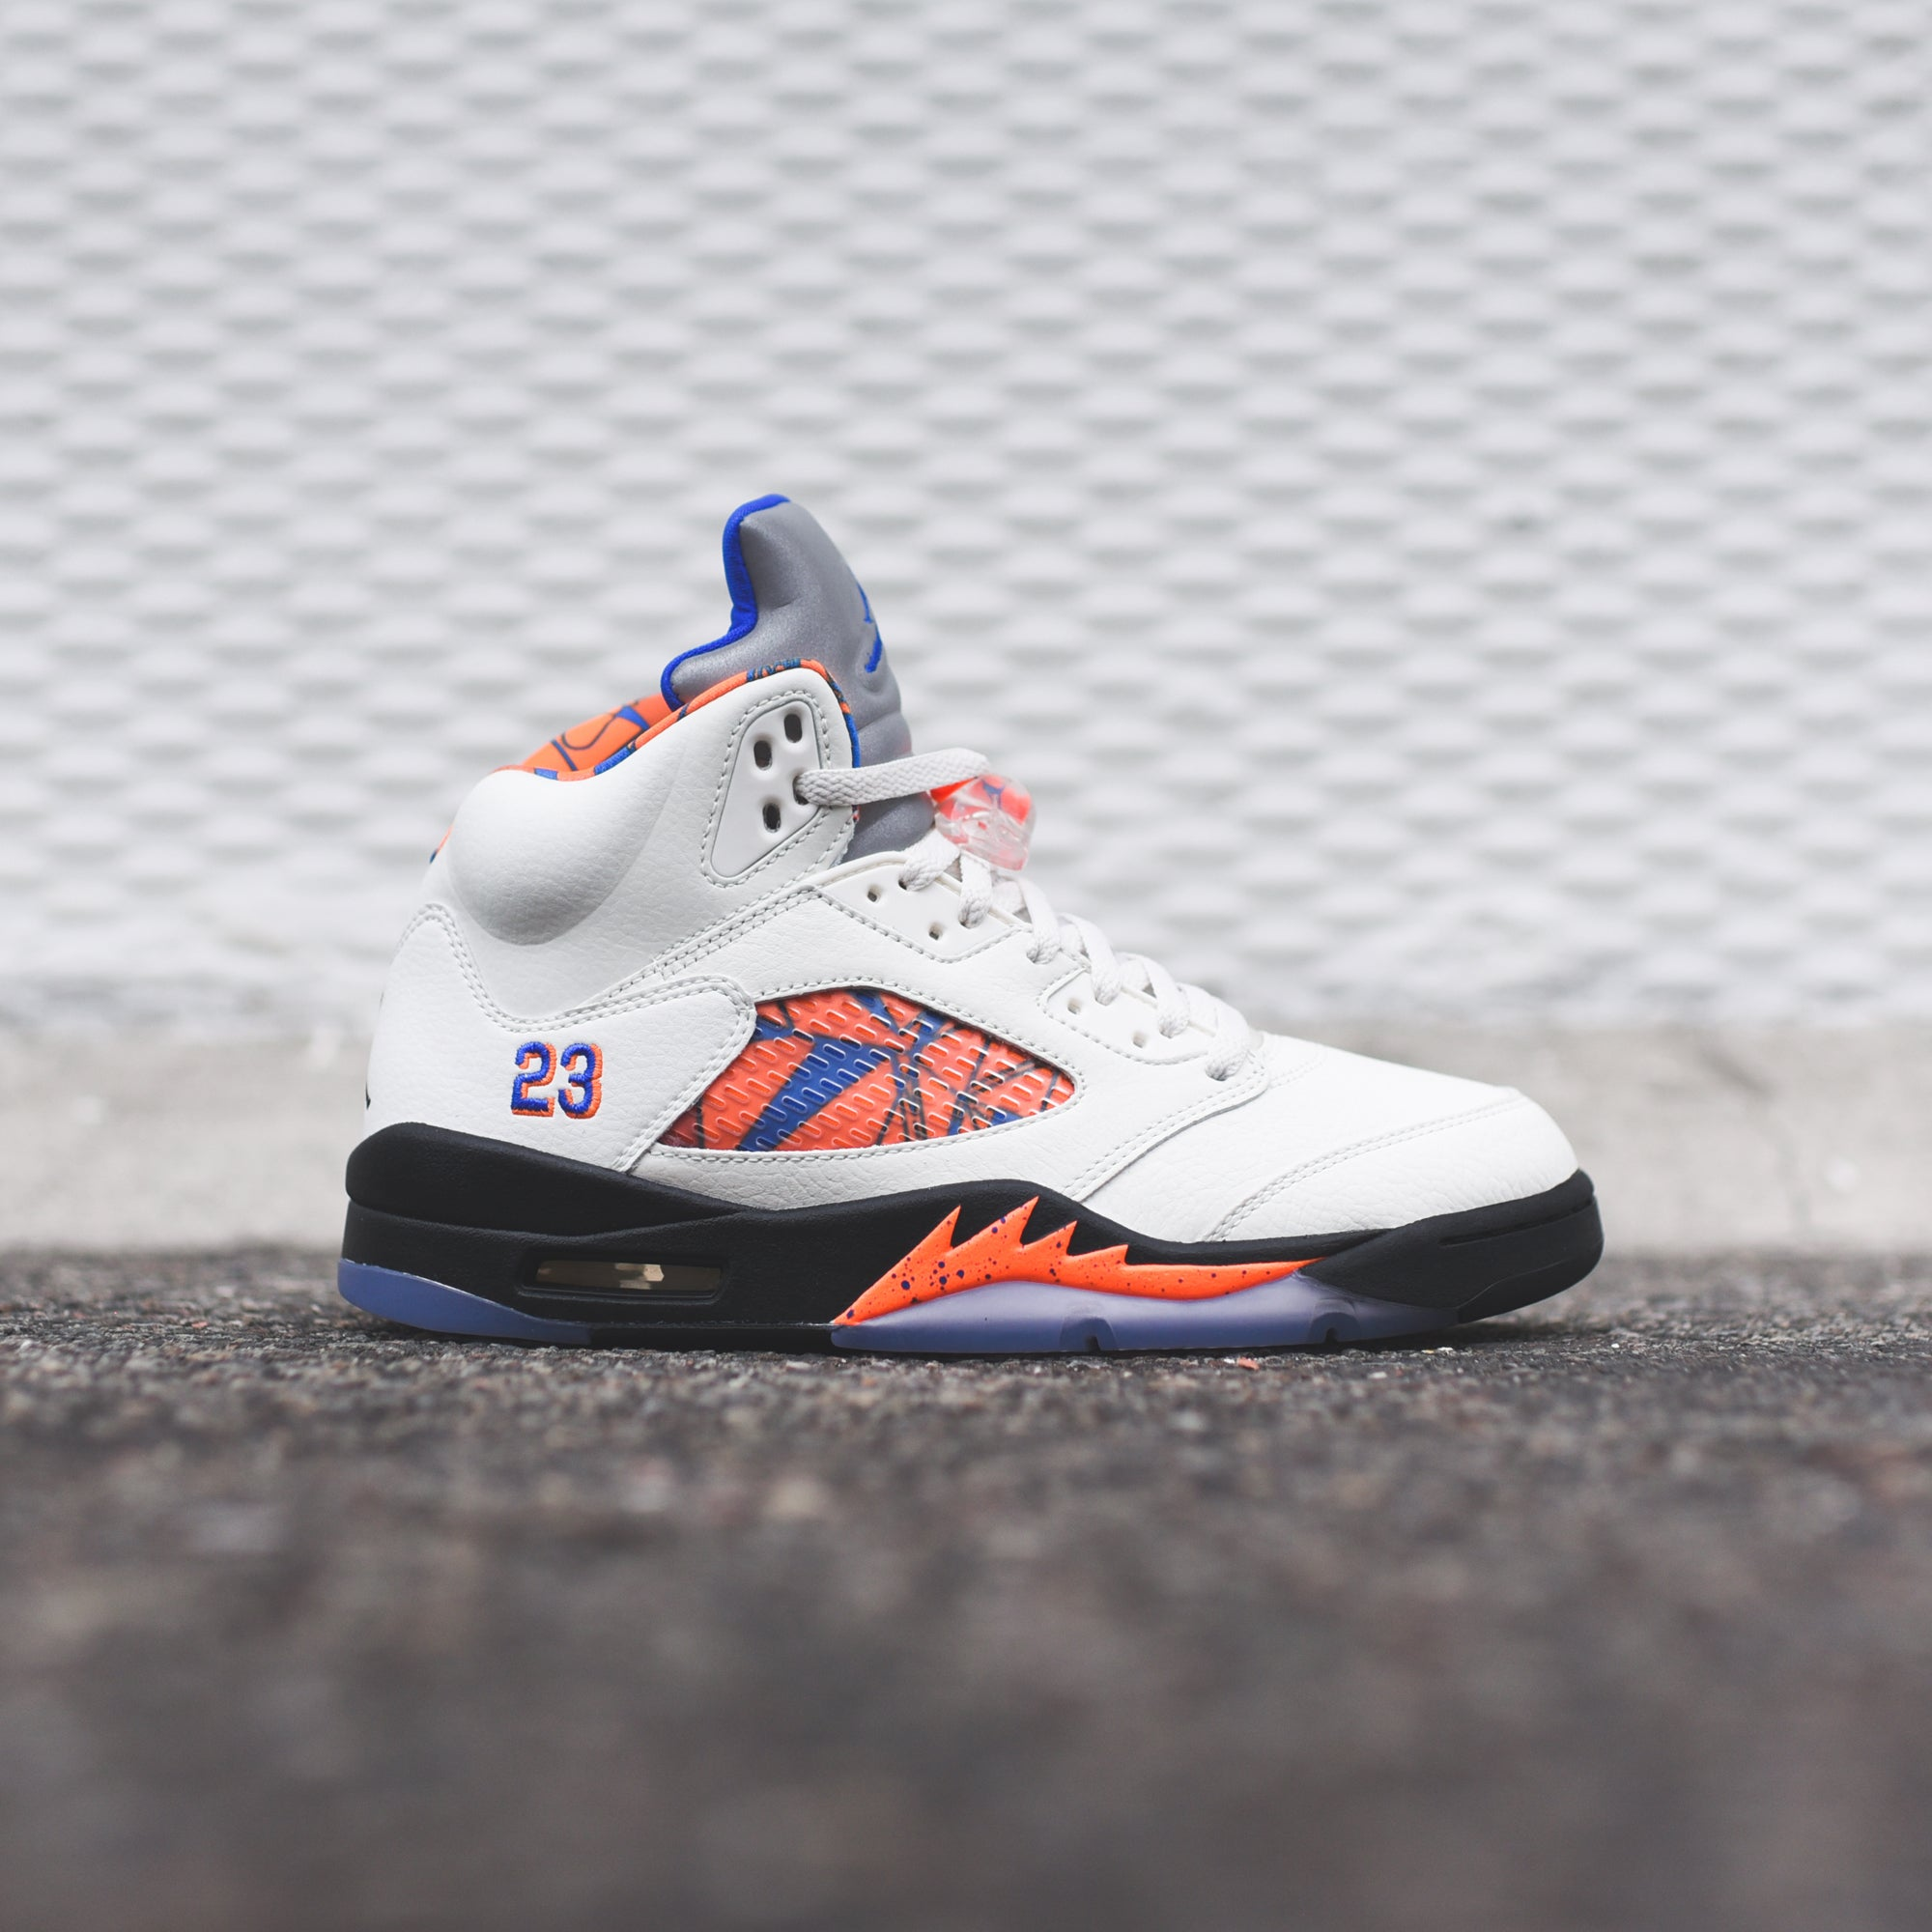 Nike GS Air Jordan 5 Retro - Sail / Racer Blue / Cone Black